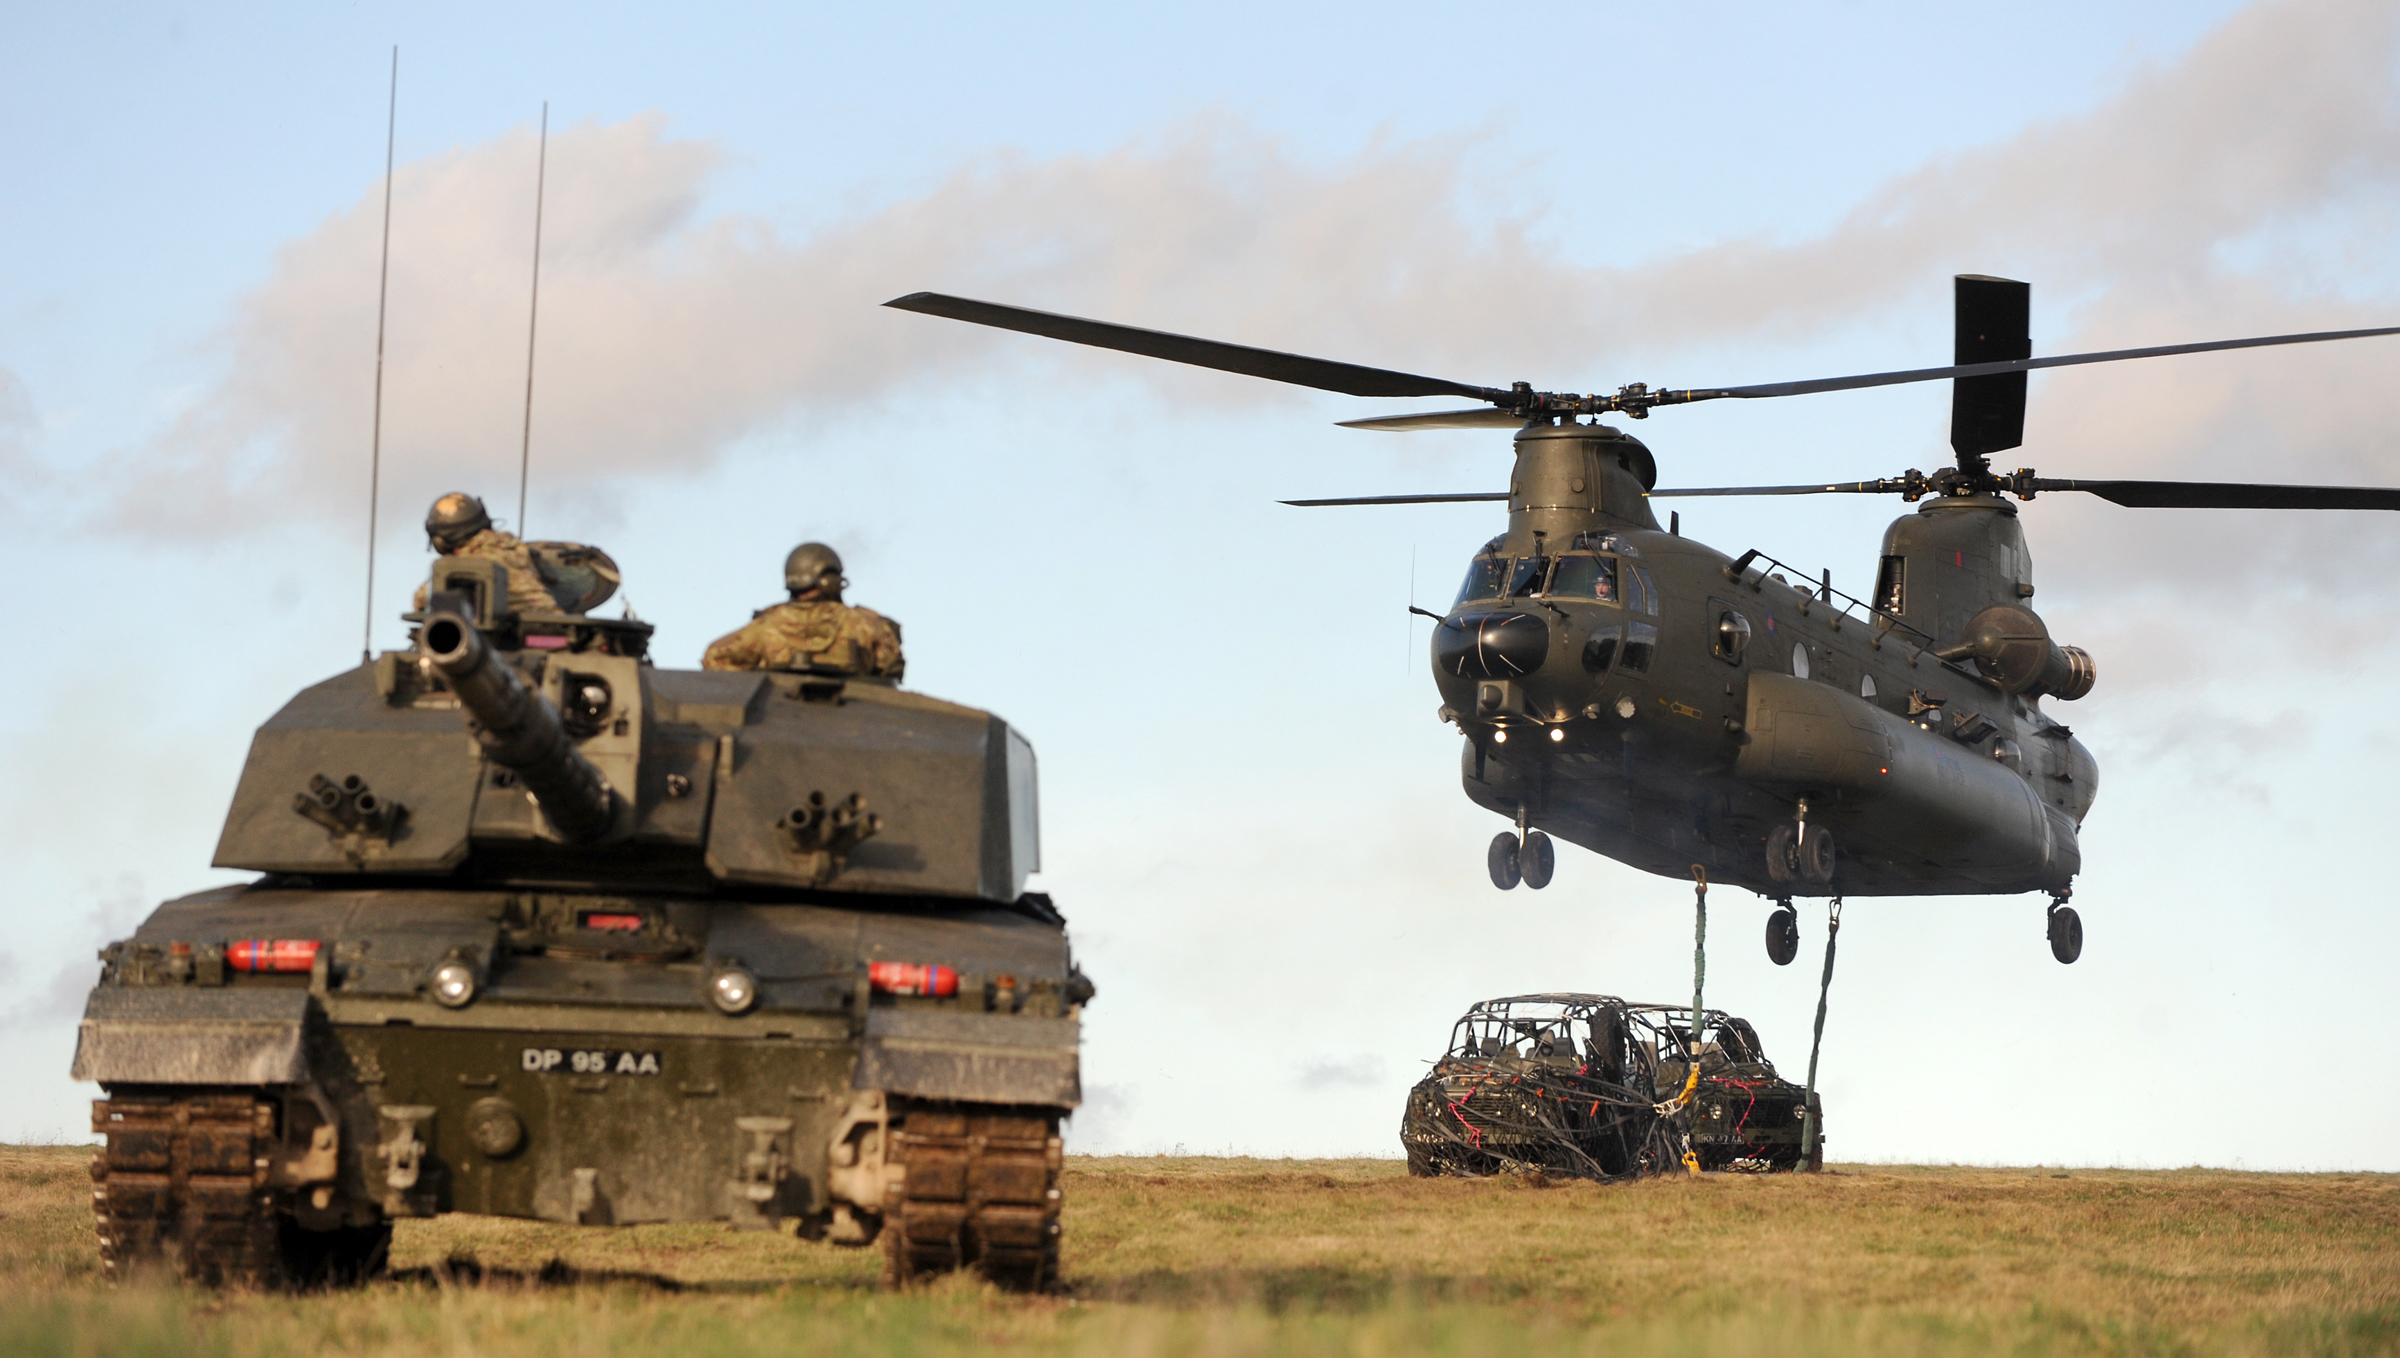 File:WESTCOUNTRY ARMY RESERVISTS CALL IN CHINOOK HELICOPTER DURING